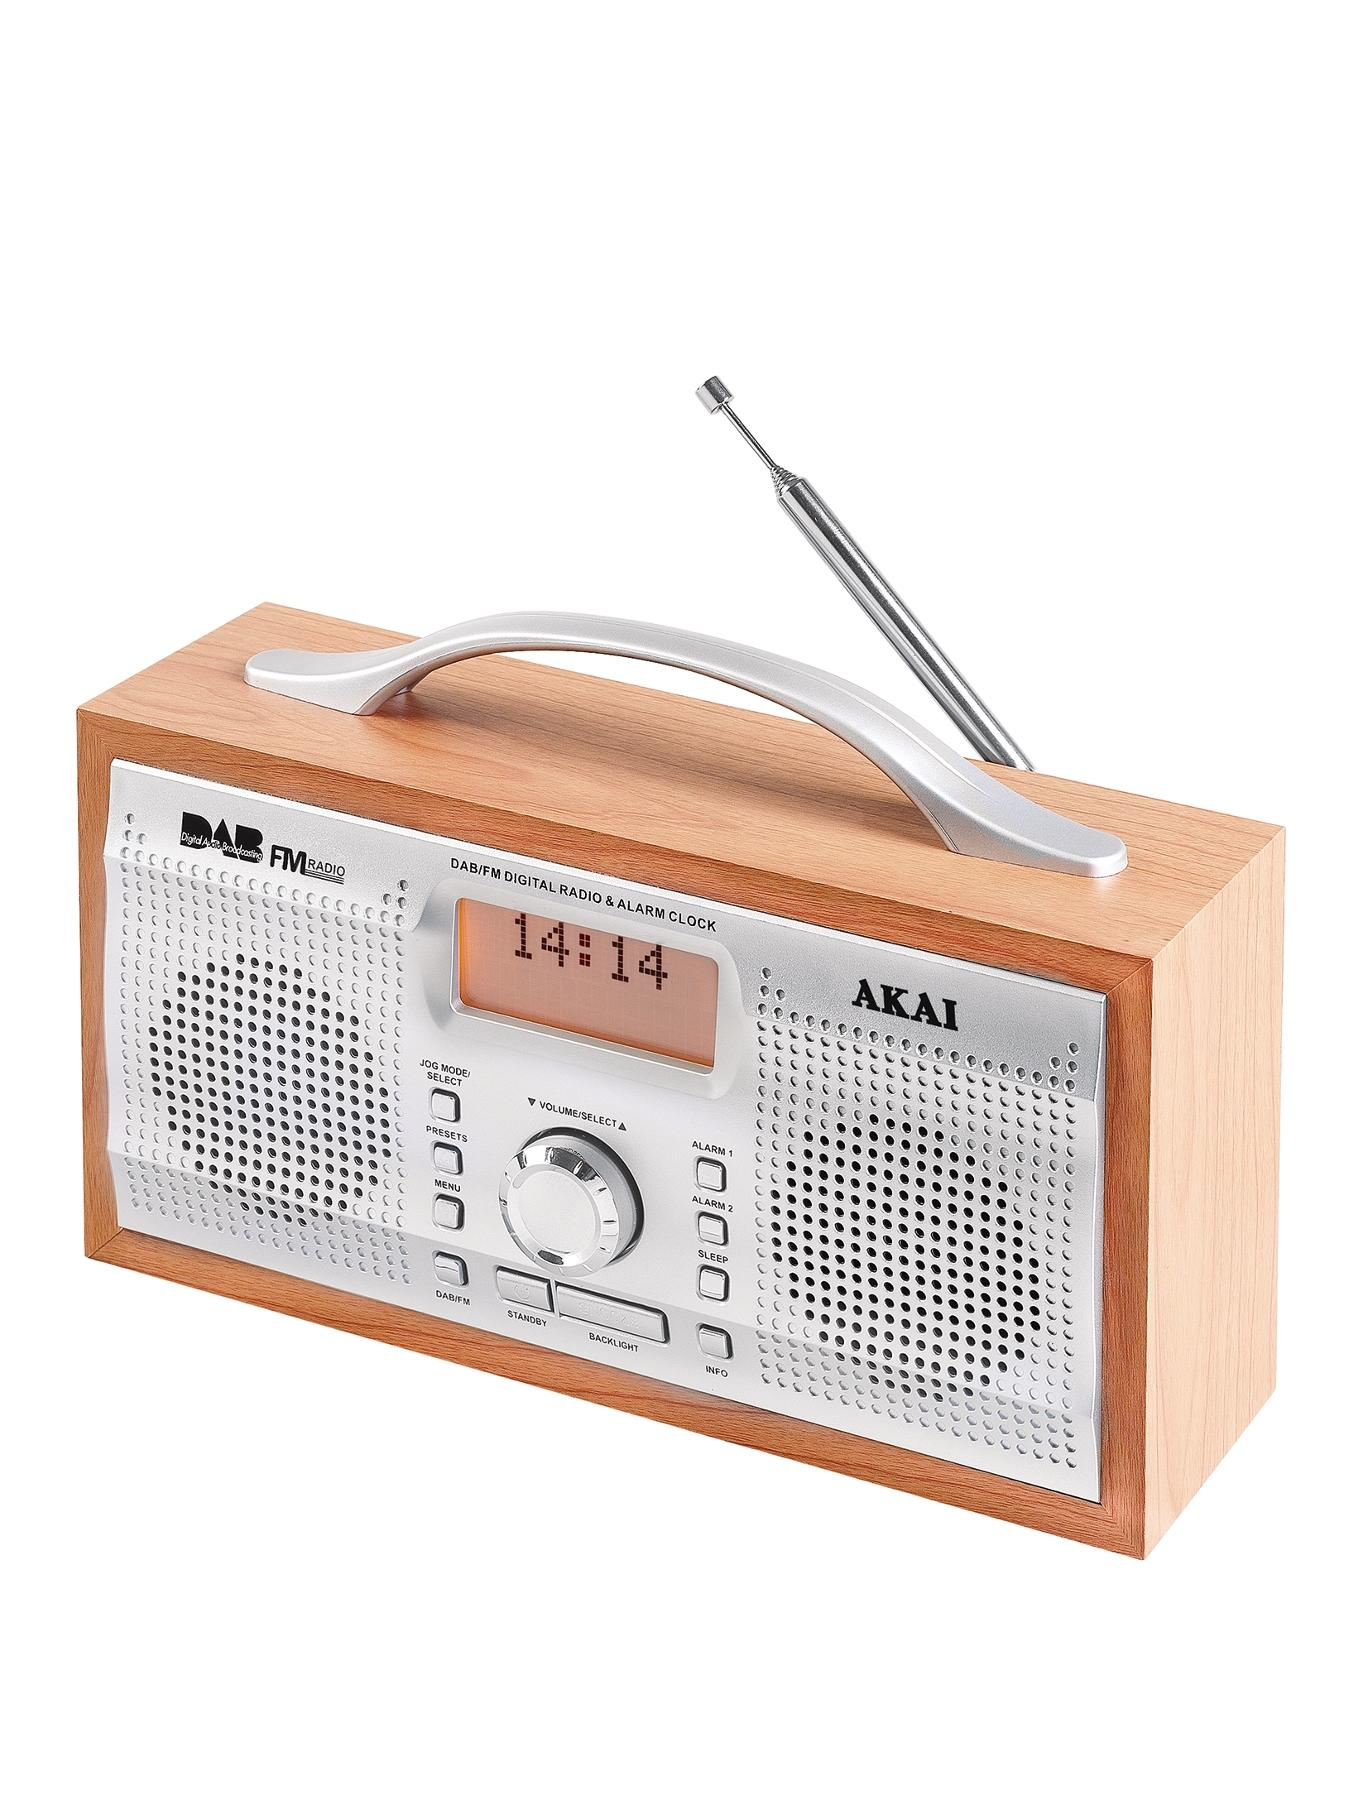 A61006 DAB/FM Digital Radio